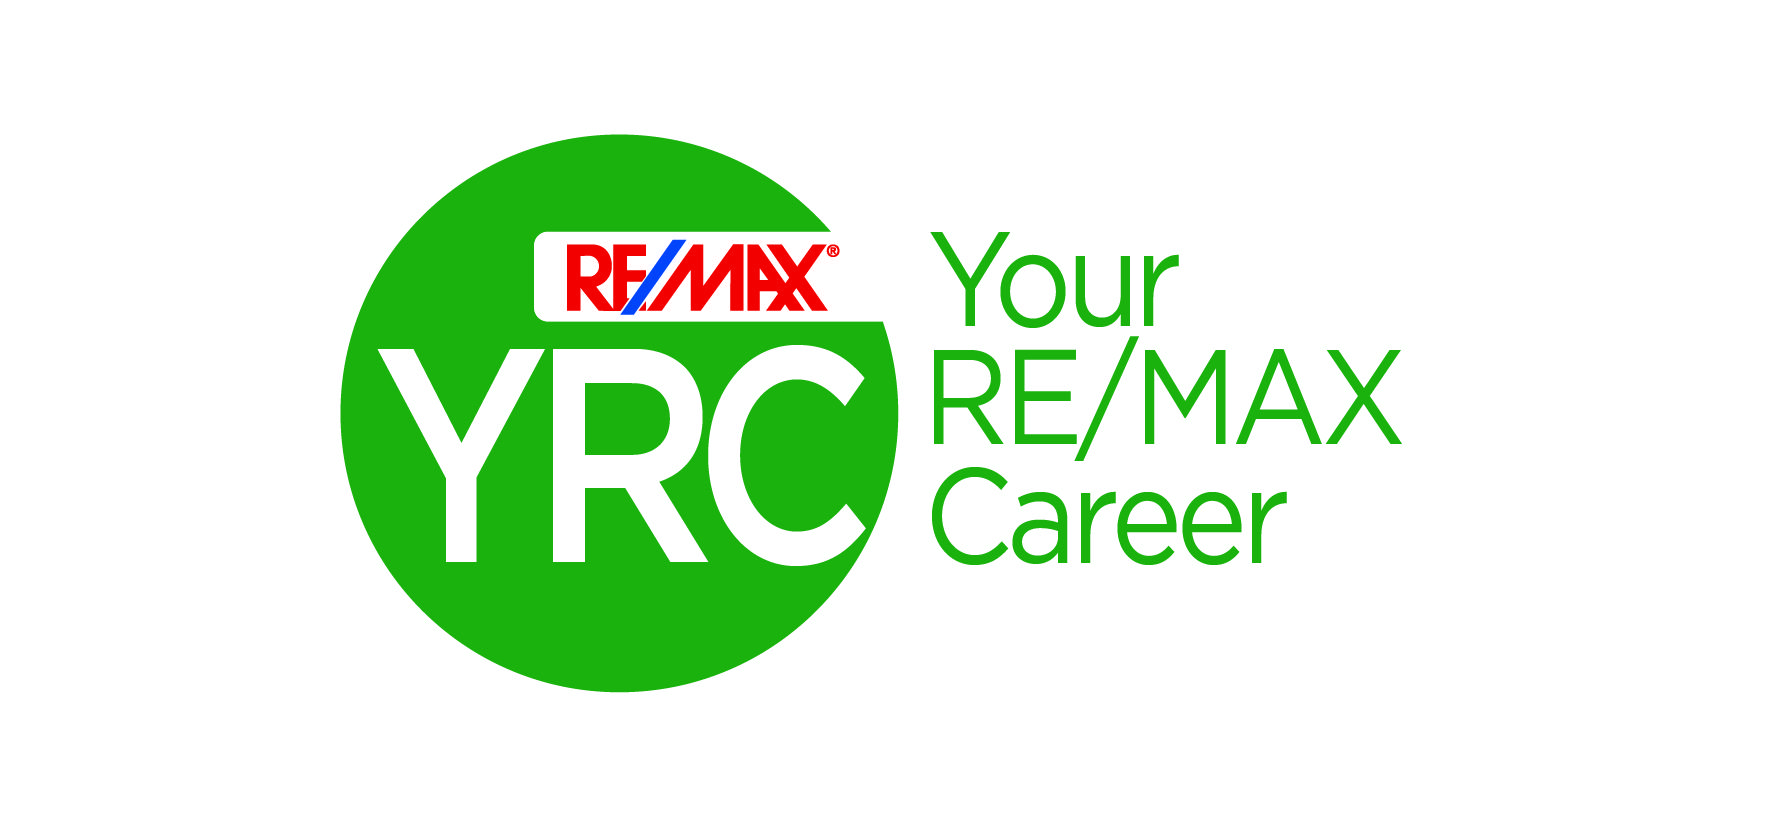 YOUR RE/MAX CAREER - ROMA